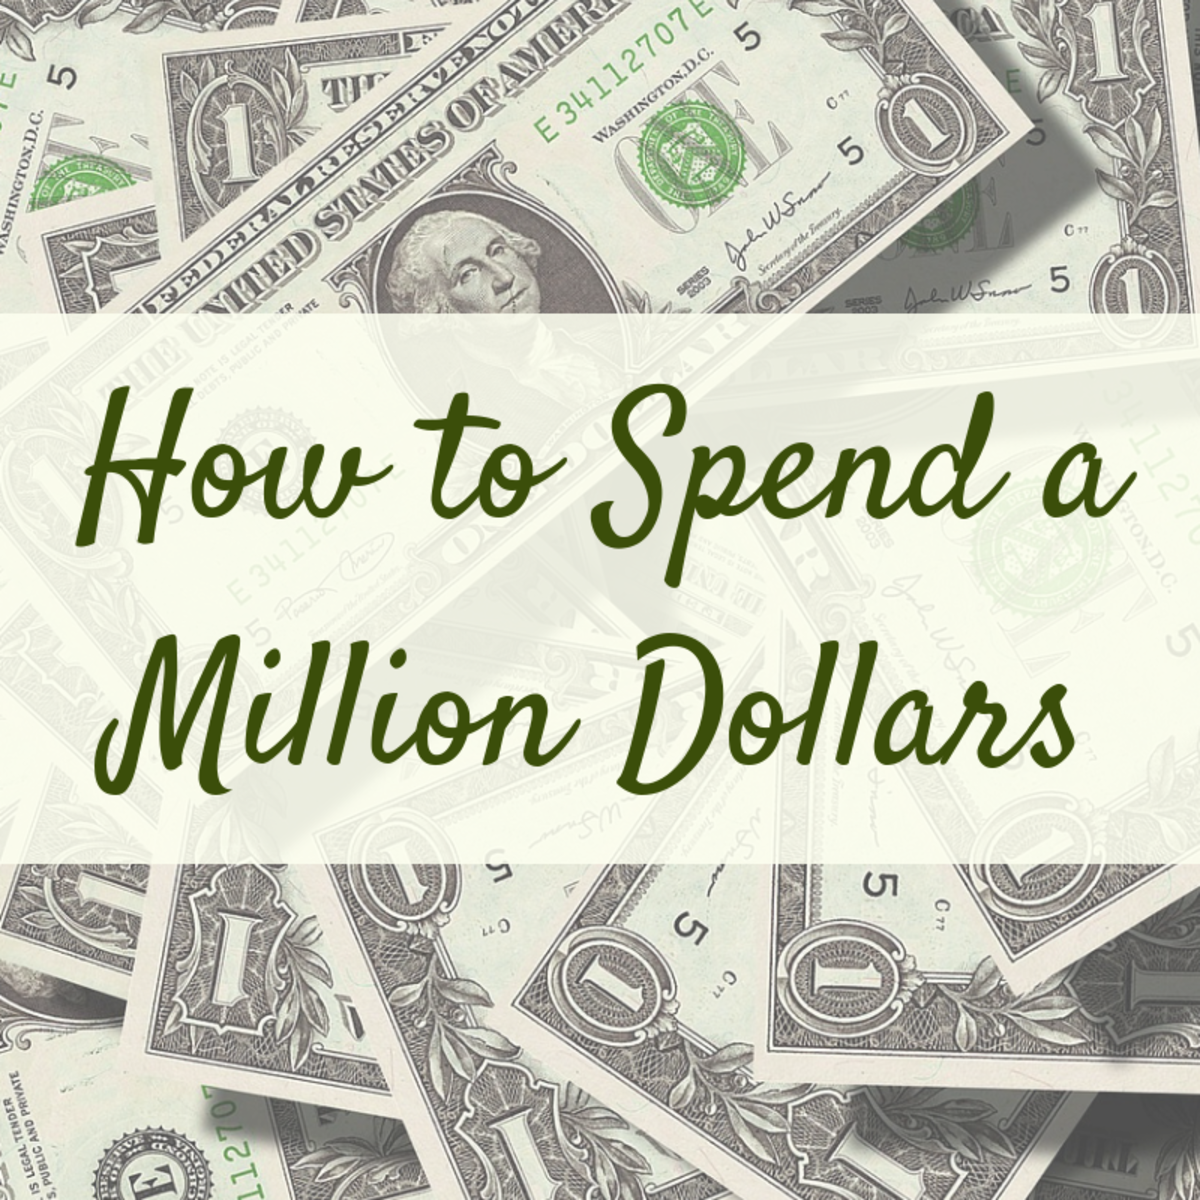 Hoping to win the lottery? Looking to cash in on your investments? Here are some ideas for what you can do with a million dollars when the day comes.